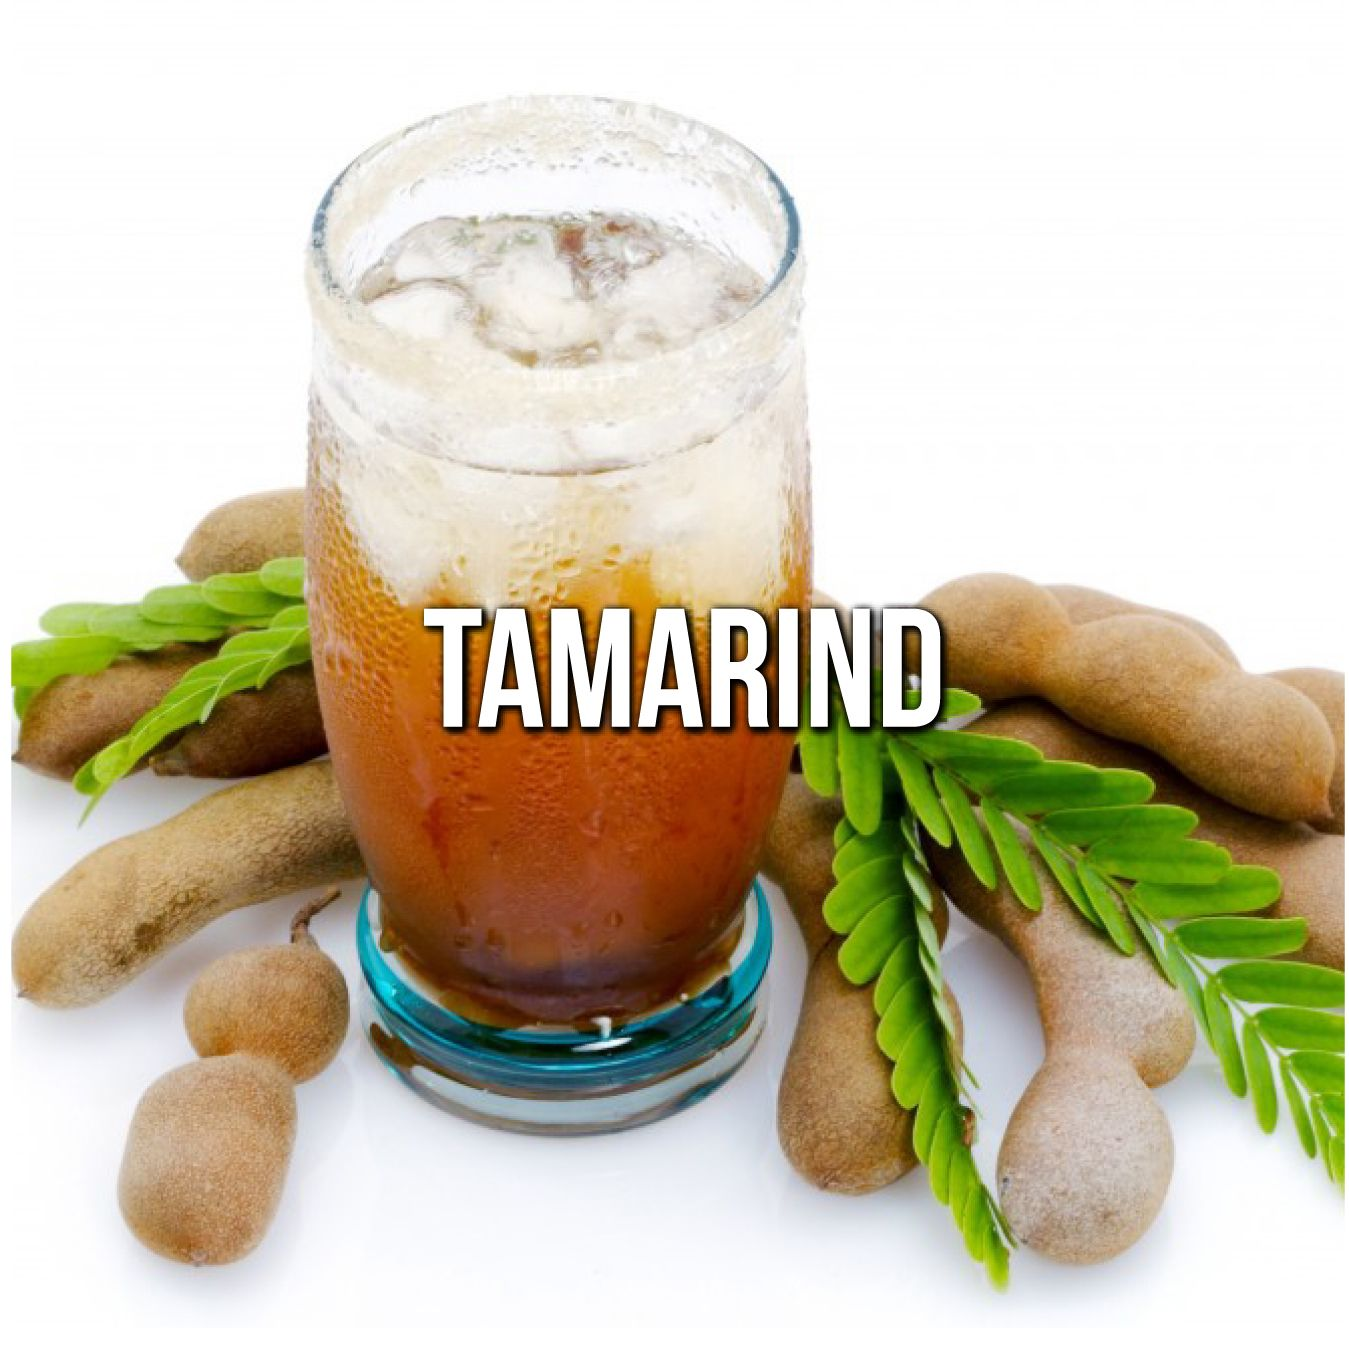 Did you know that tamarind fruit is ideal for those who